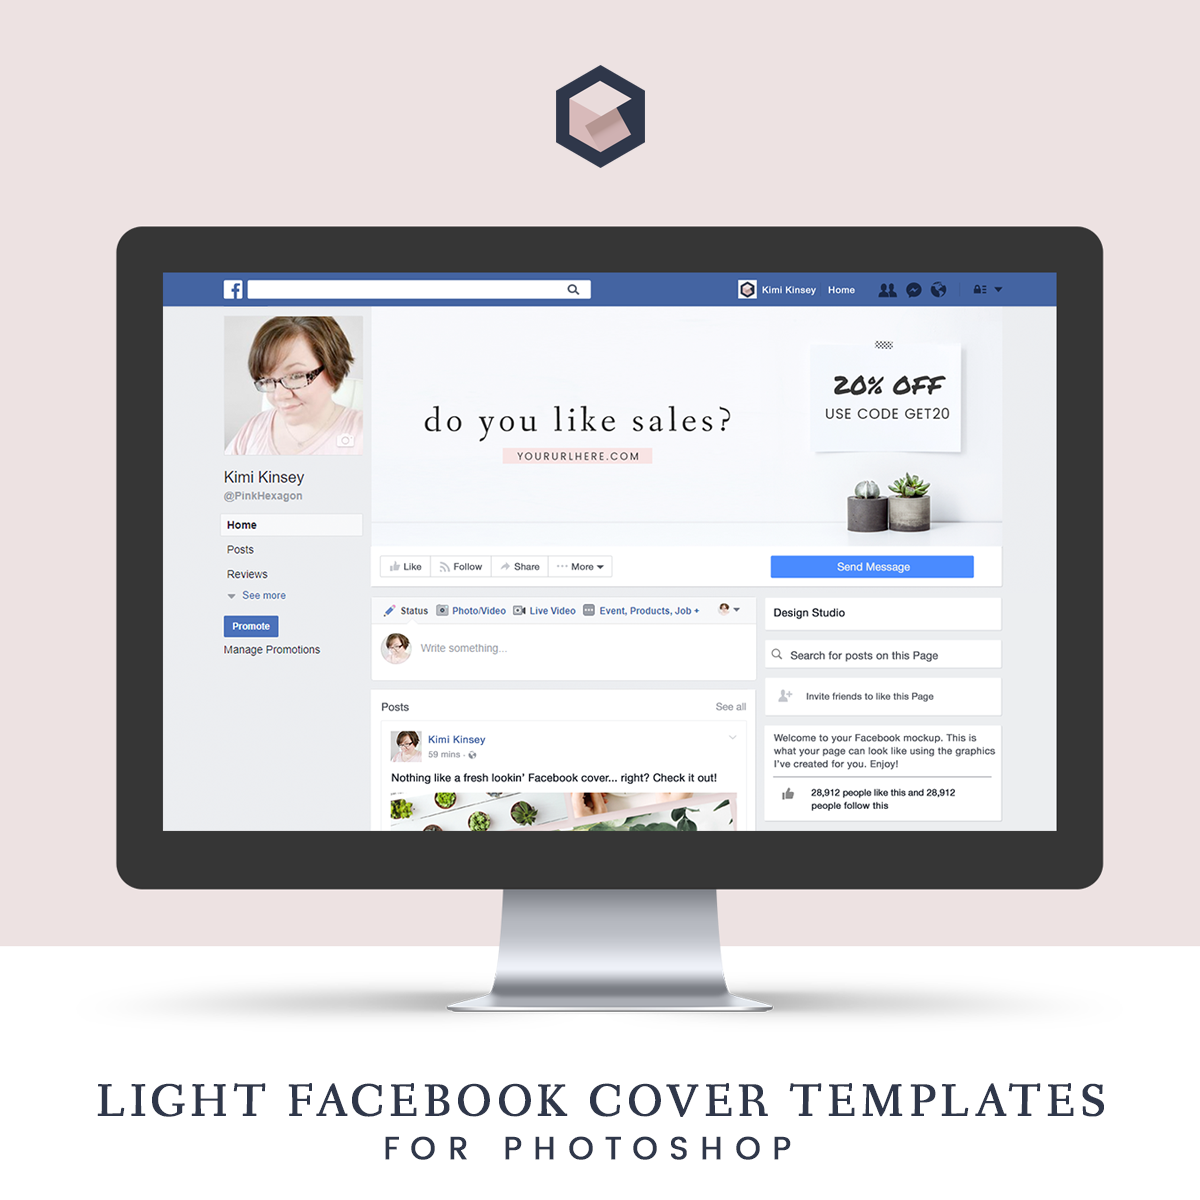 Light Facebook Cover Templates • Kimi Kinsey